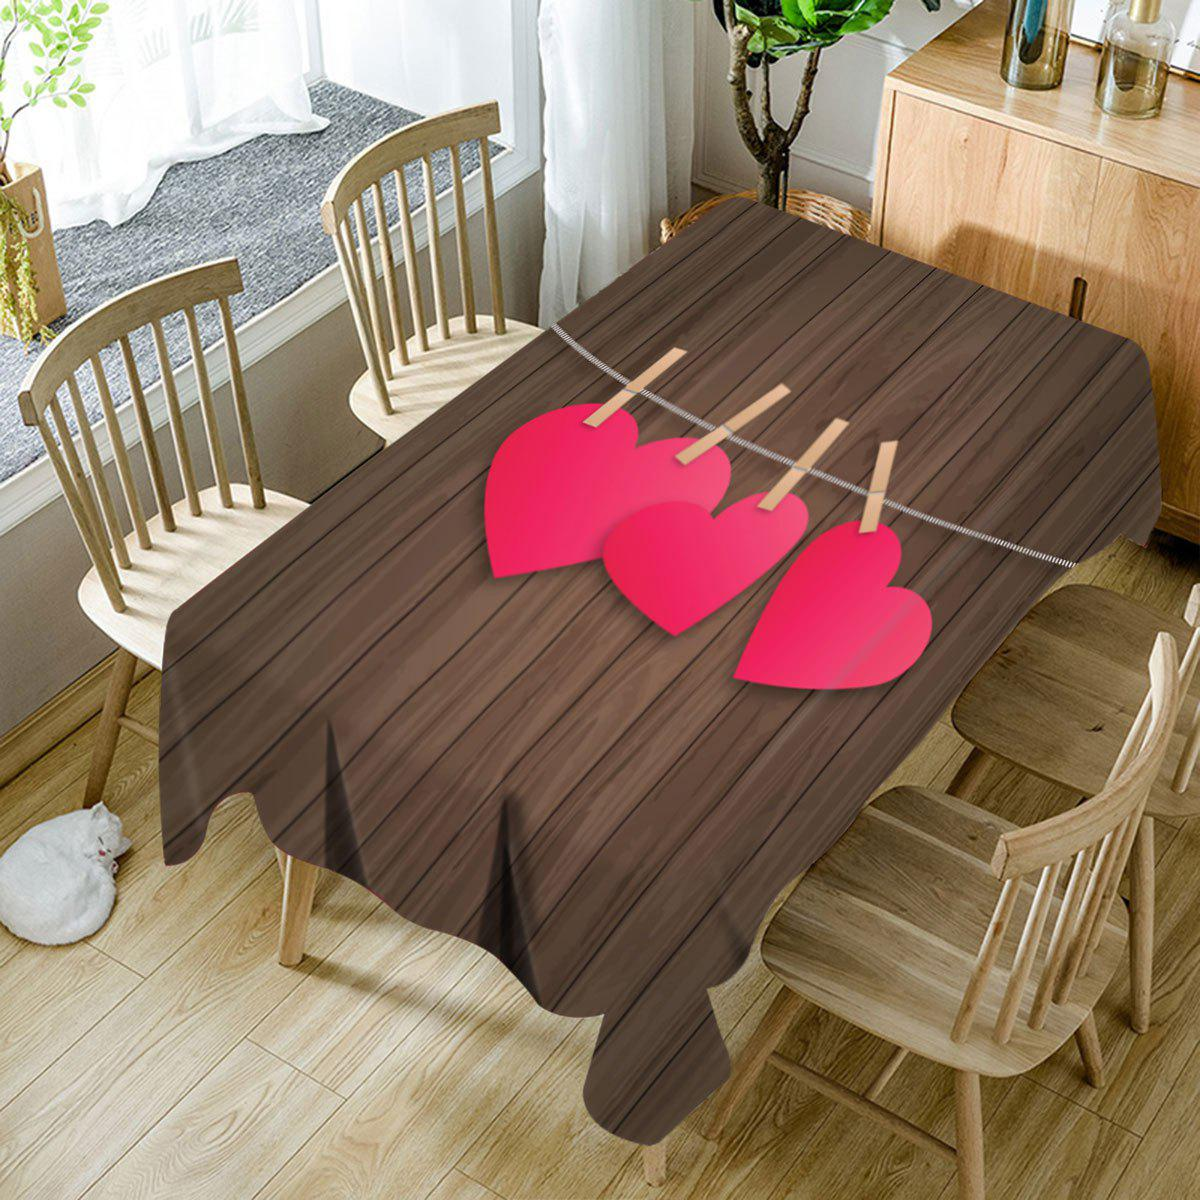 Unique Heart and Wood Grain Print Waterproof Table Cloth